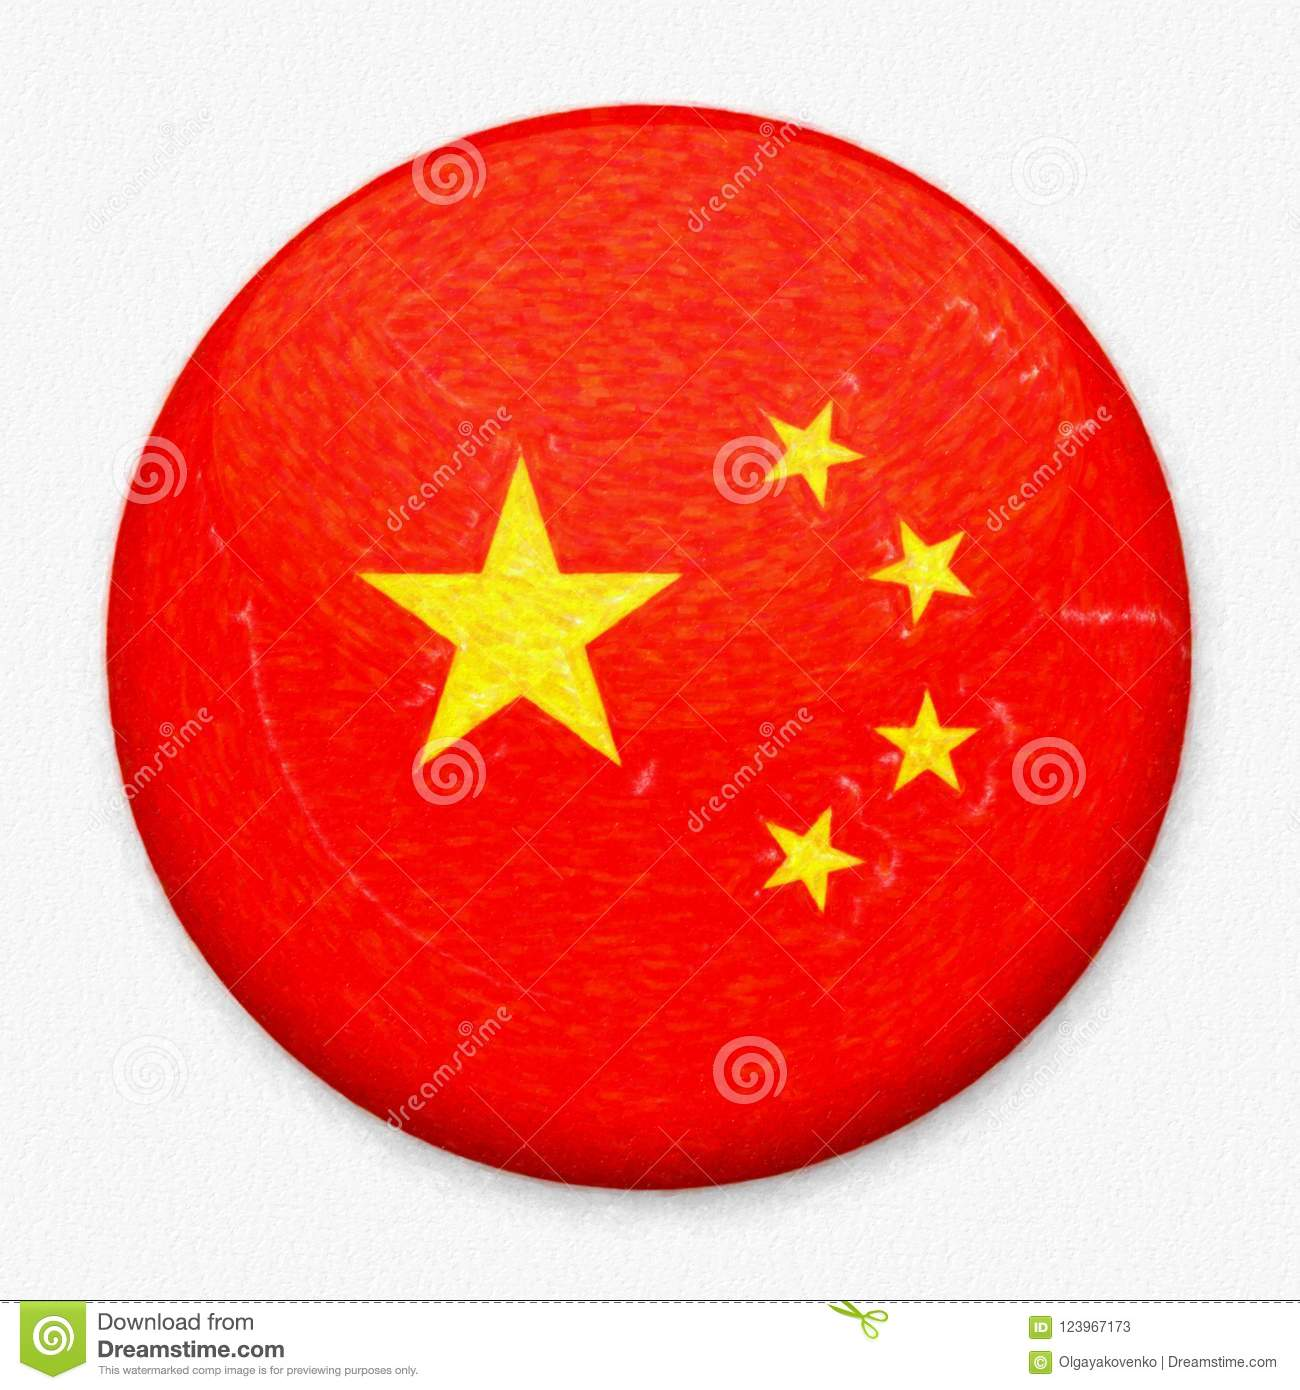 Watercolor Flag of China in the form of a round button